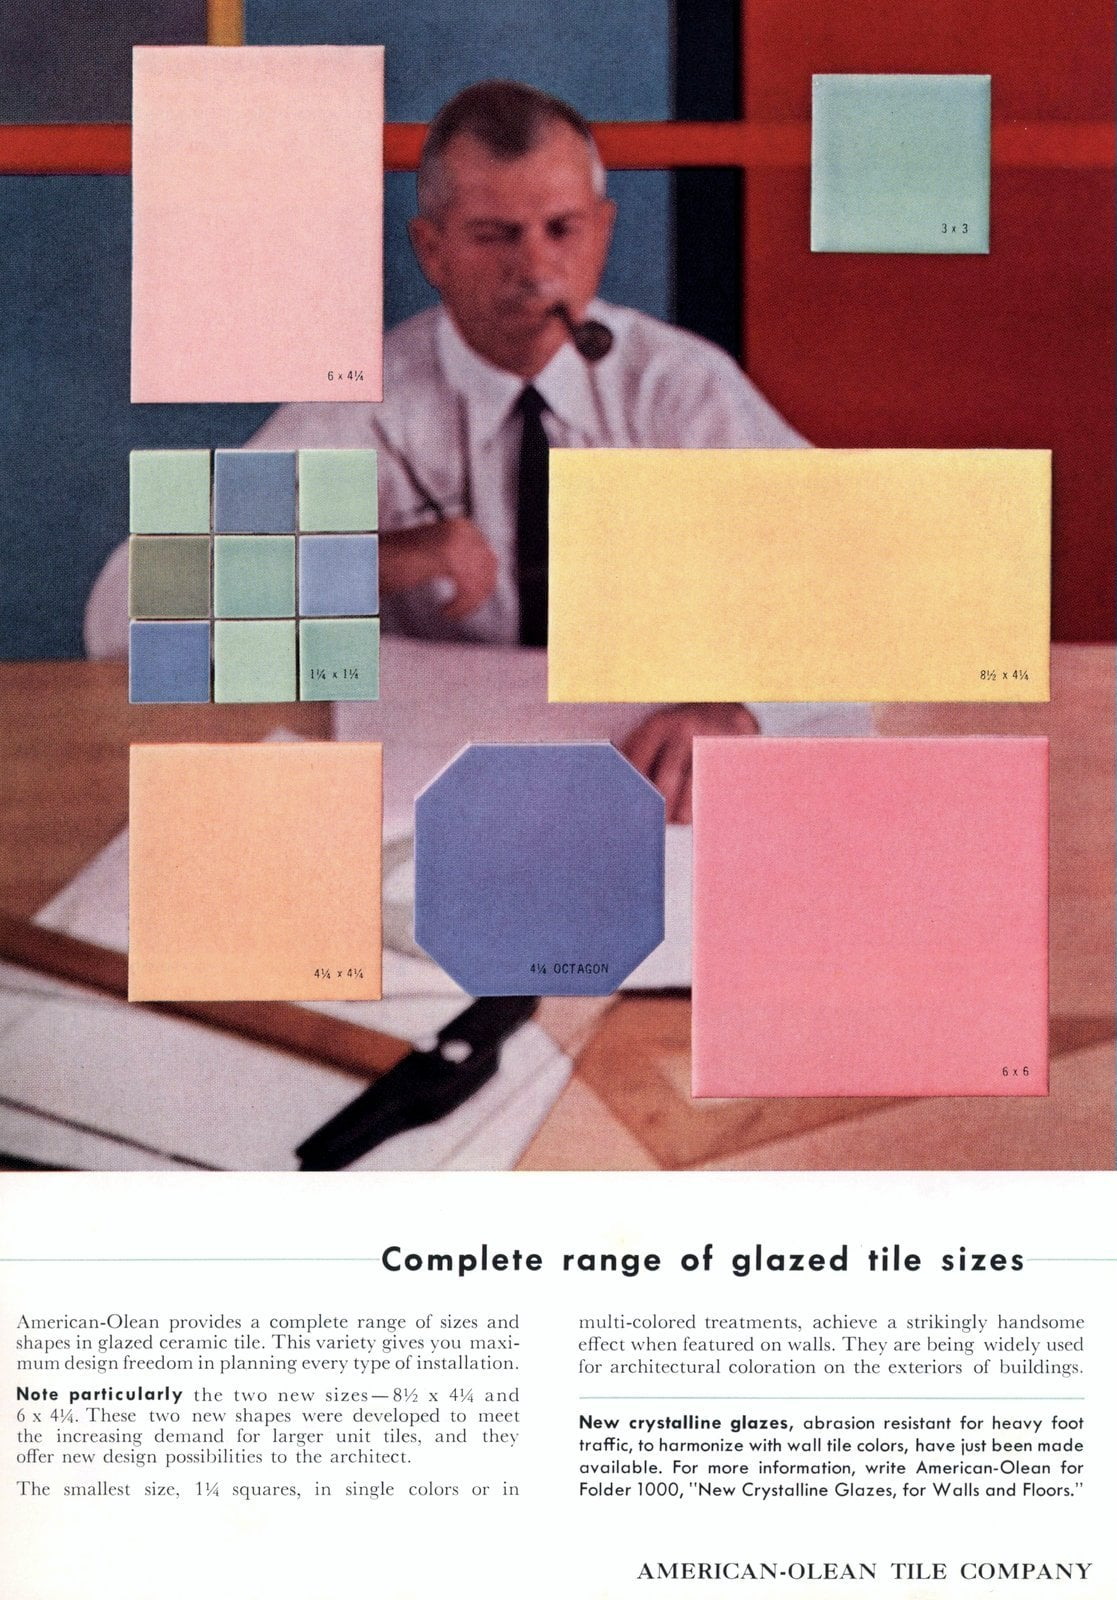 Colors of vintage ceramic tiles from American-Olean (1956)